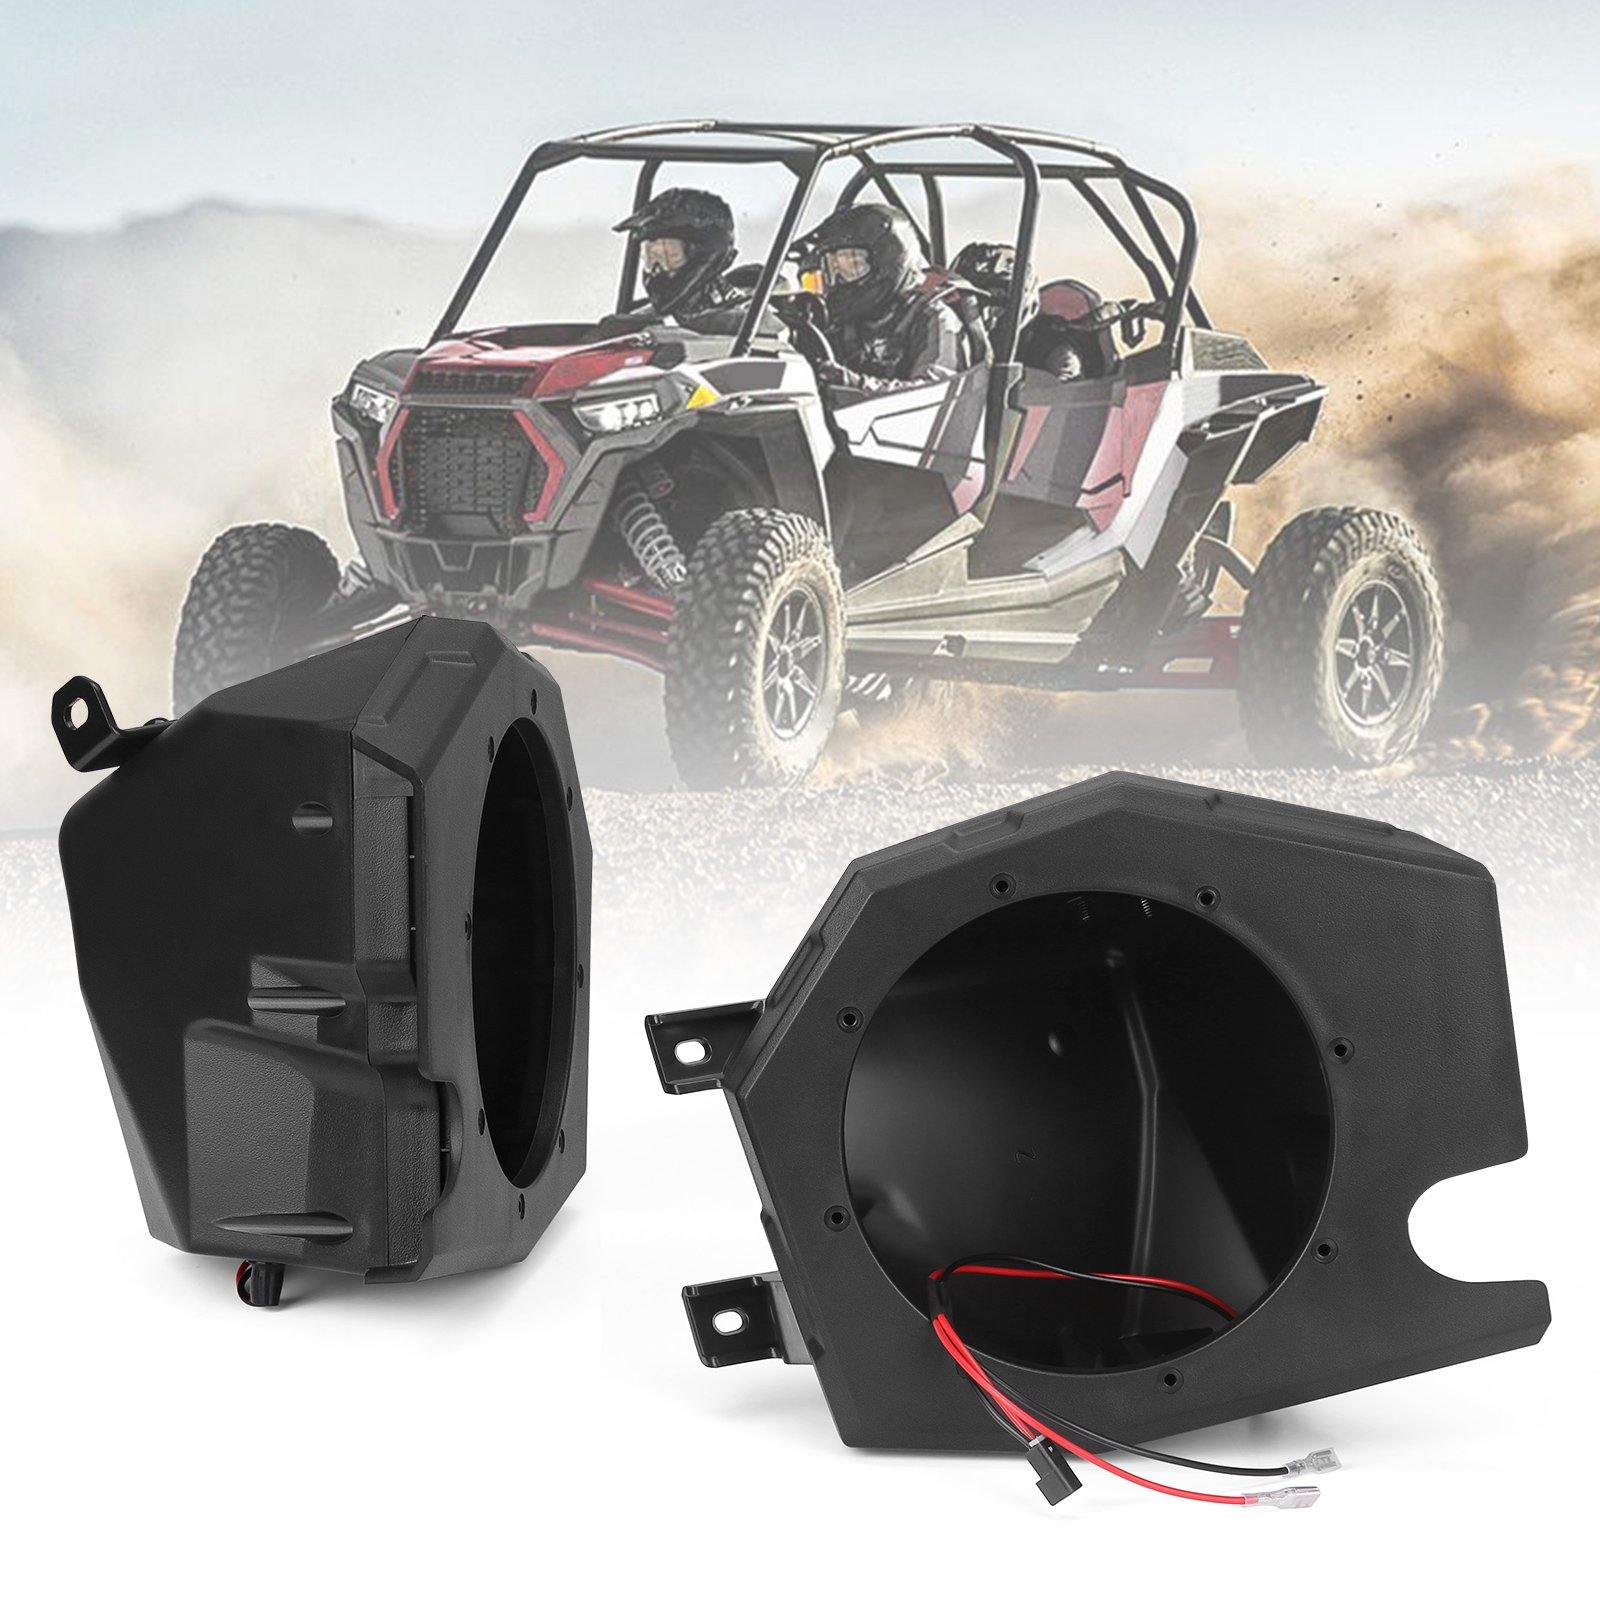 Front Kick Pods Panel, RZR XP 1000 Speaker Pods Enclosures 6.5 inch Compatible with RZR 900 / XP 1000 / XP Turbo 2014-2019 - KEMIMOTO